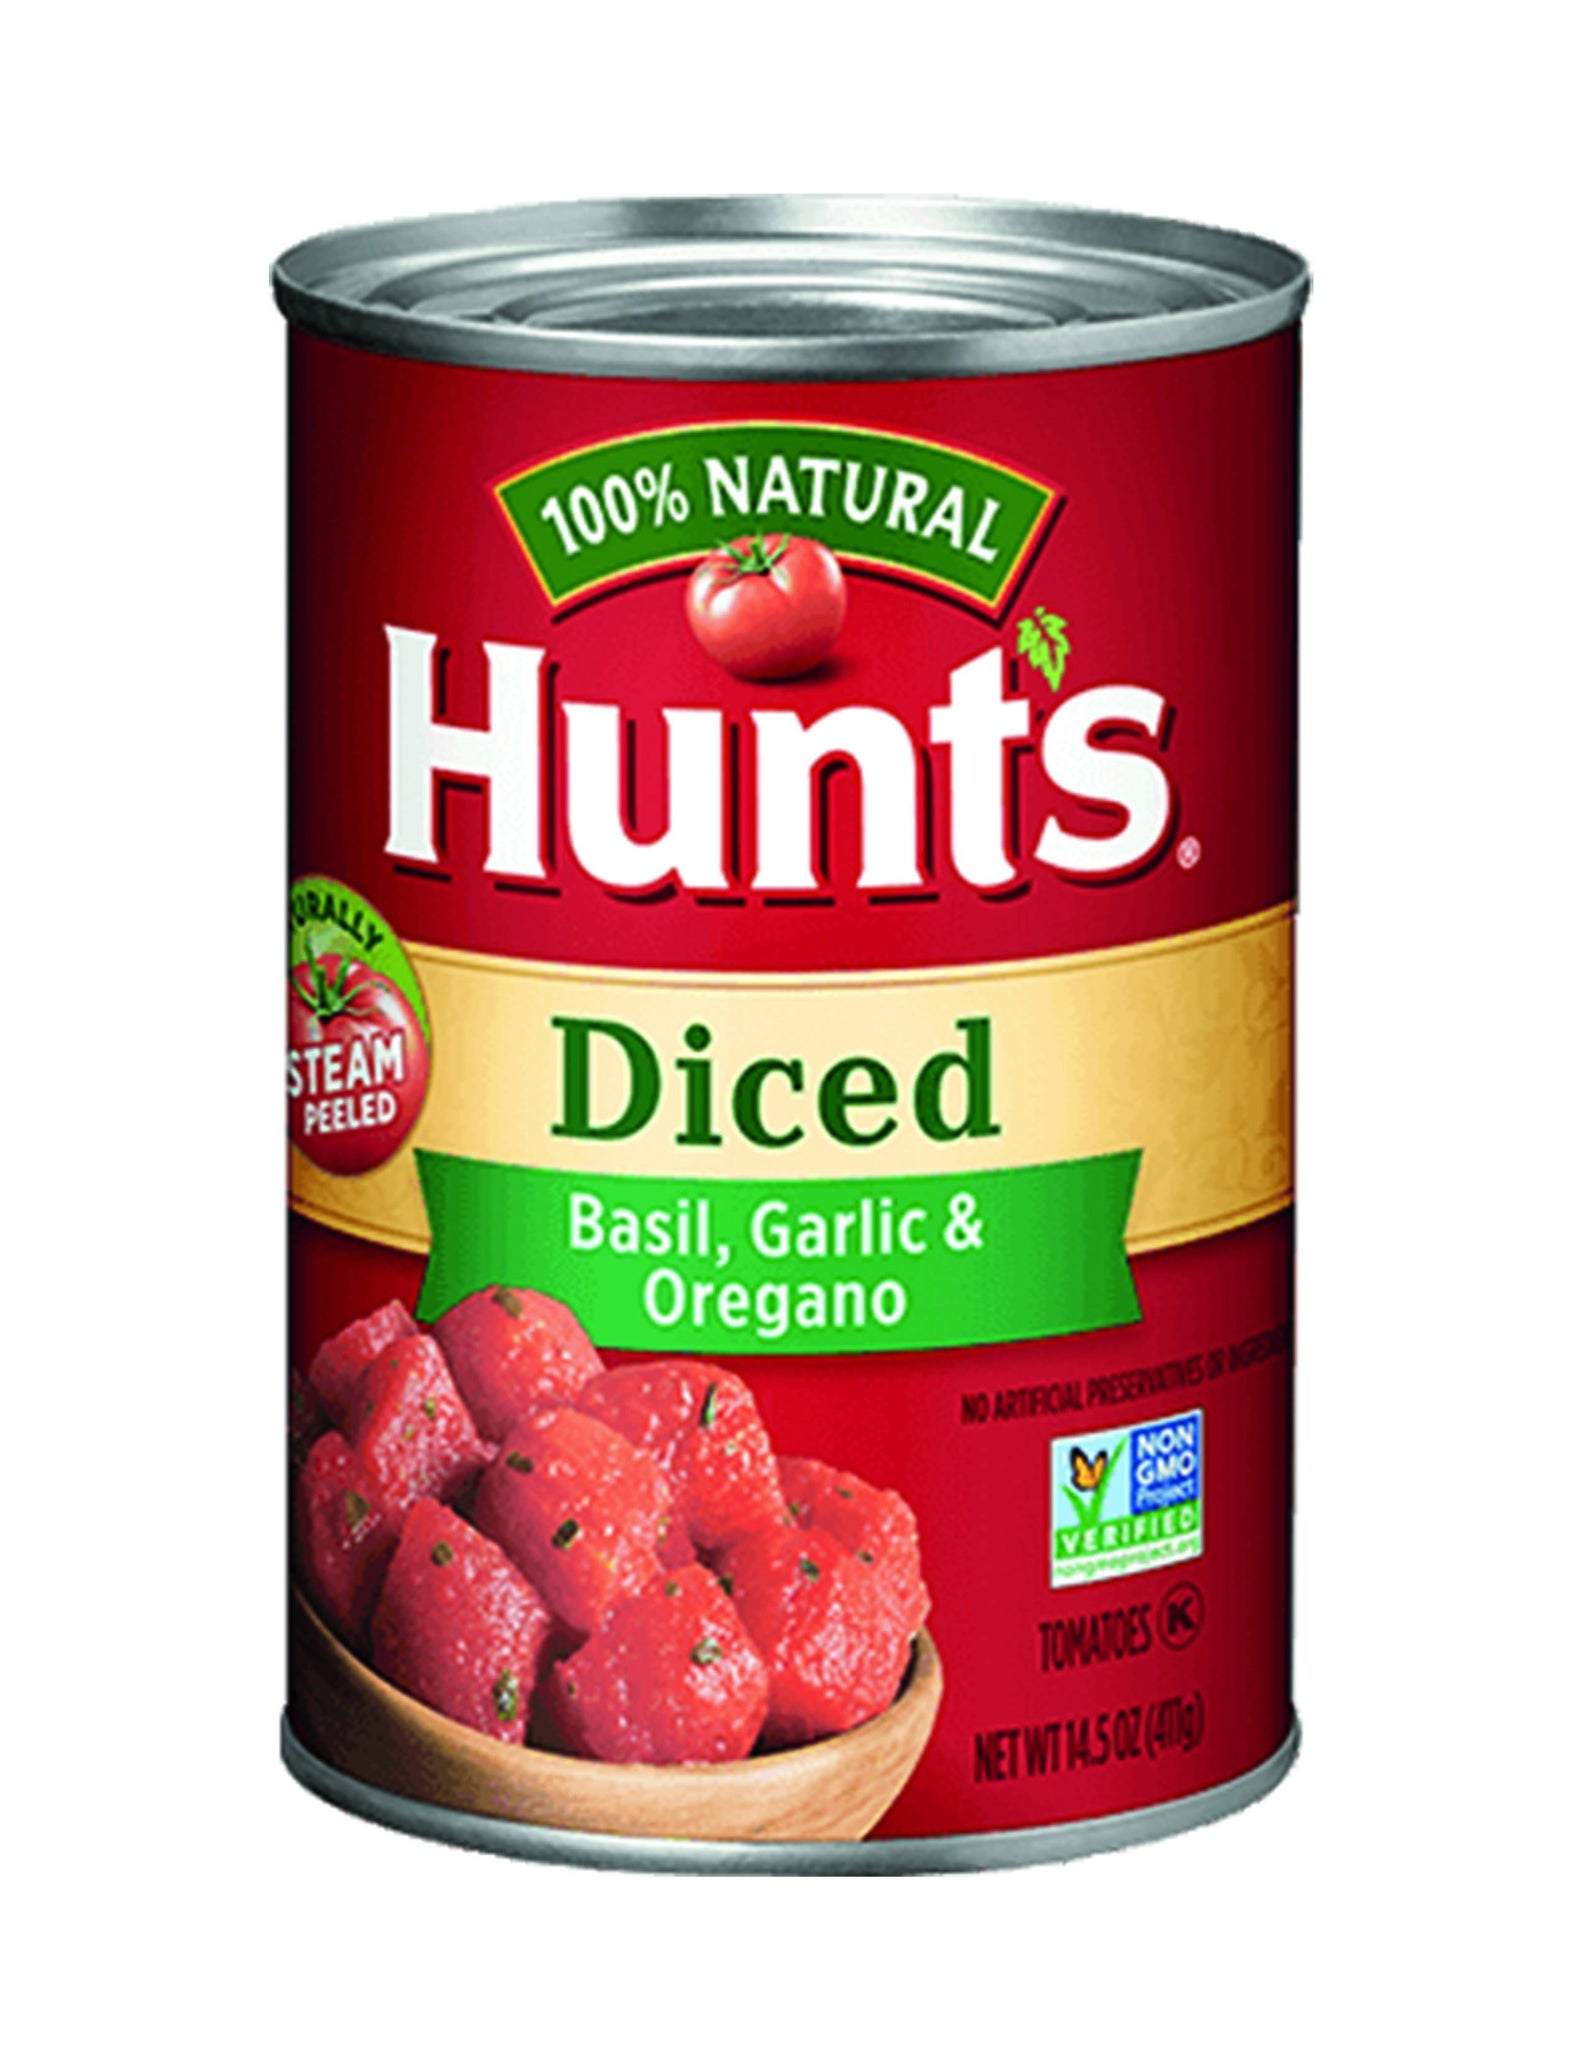 bah>Hunt's Diced Tomatoes Basil, Garlic, Oregano, 14.5oz